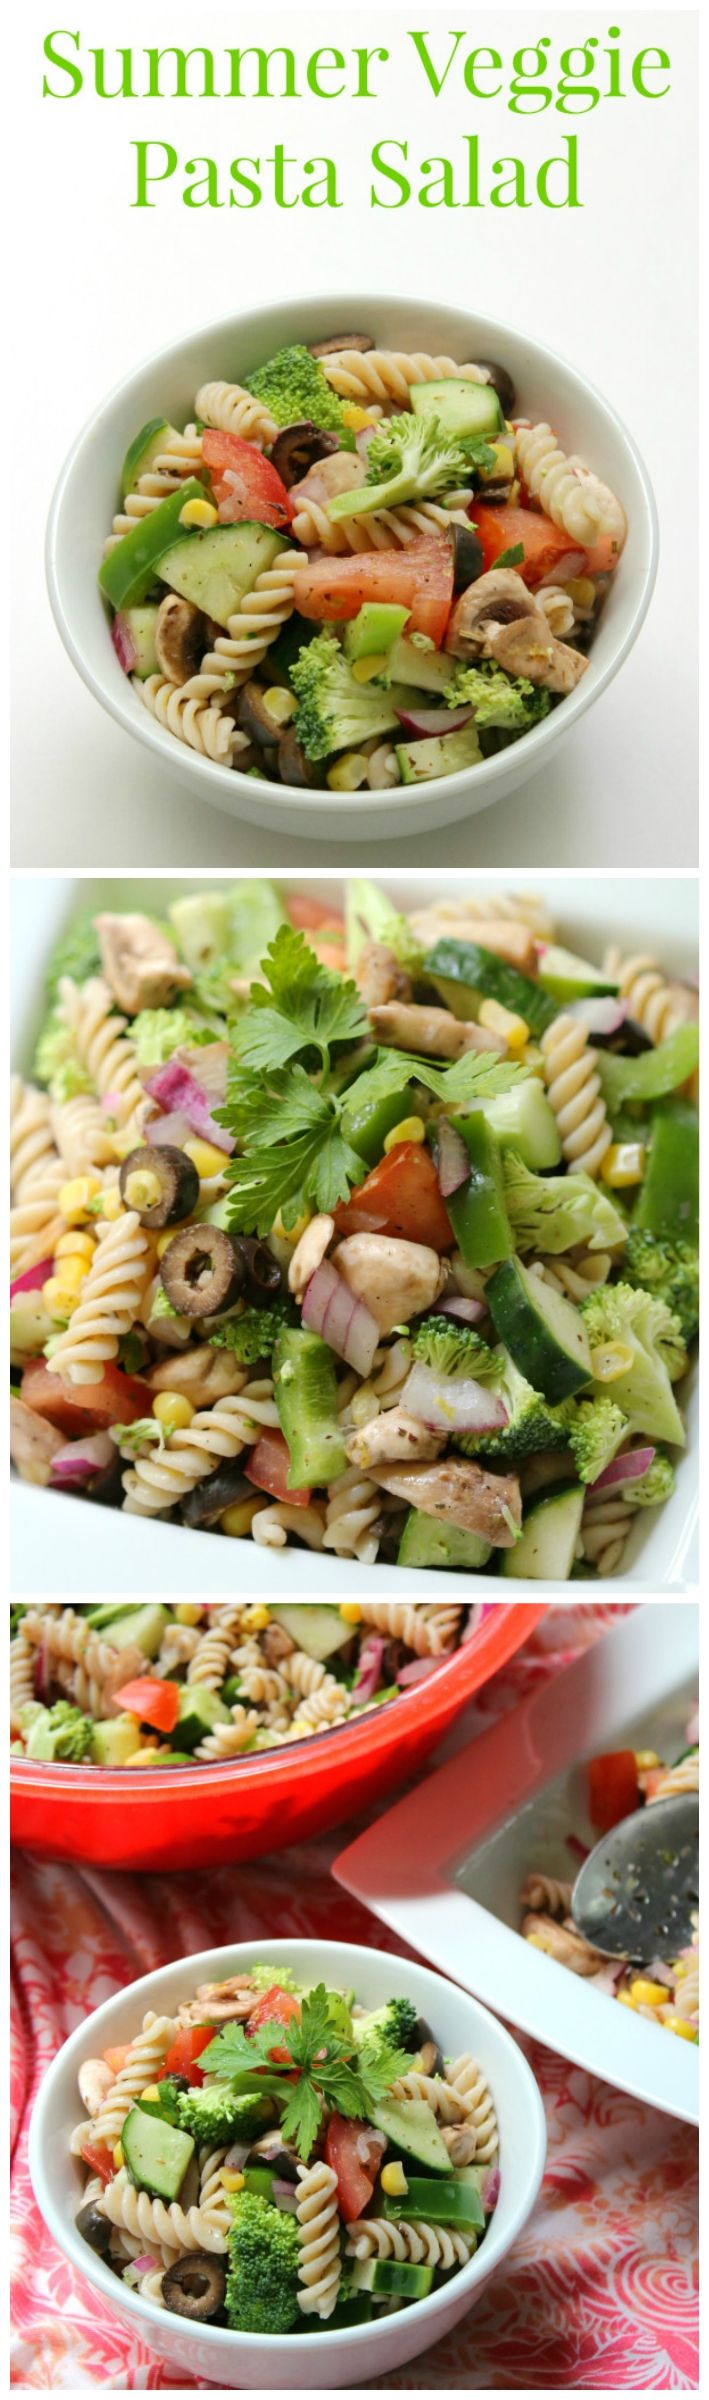 Summer Veggie Pasta Salad - Summer isn't complete without the pasta salad! This gluten-free, allergy-friendly, vegan pasta salad is packed with bright summer veggies and tossed with a zesty Italian oil-free dressing. A classic made healthy and safe for everyone to enjoy at any summer cook-out!